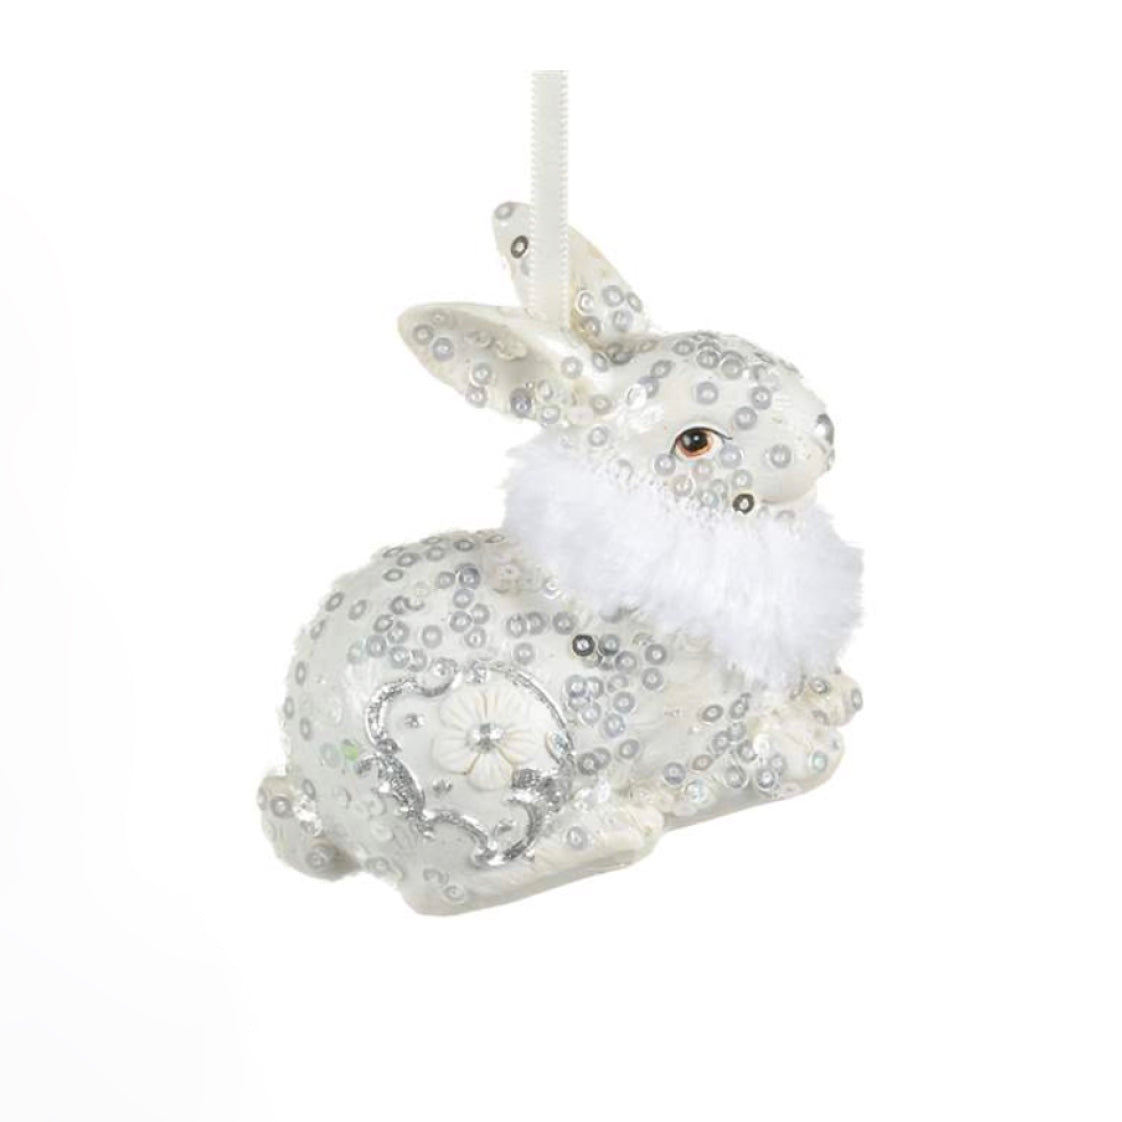 White Bunny With Fur Collar Ornament | Putti Celebrations